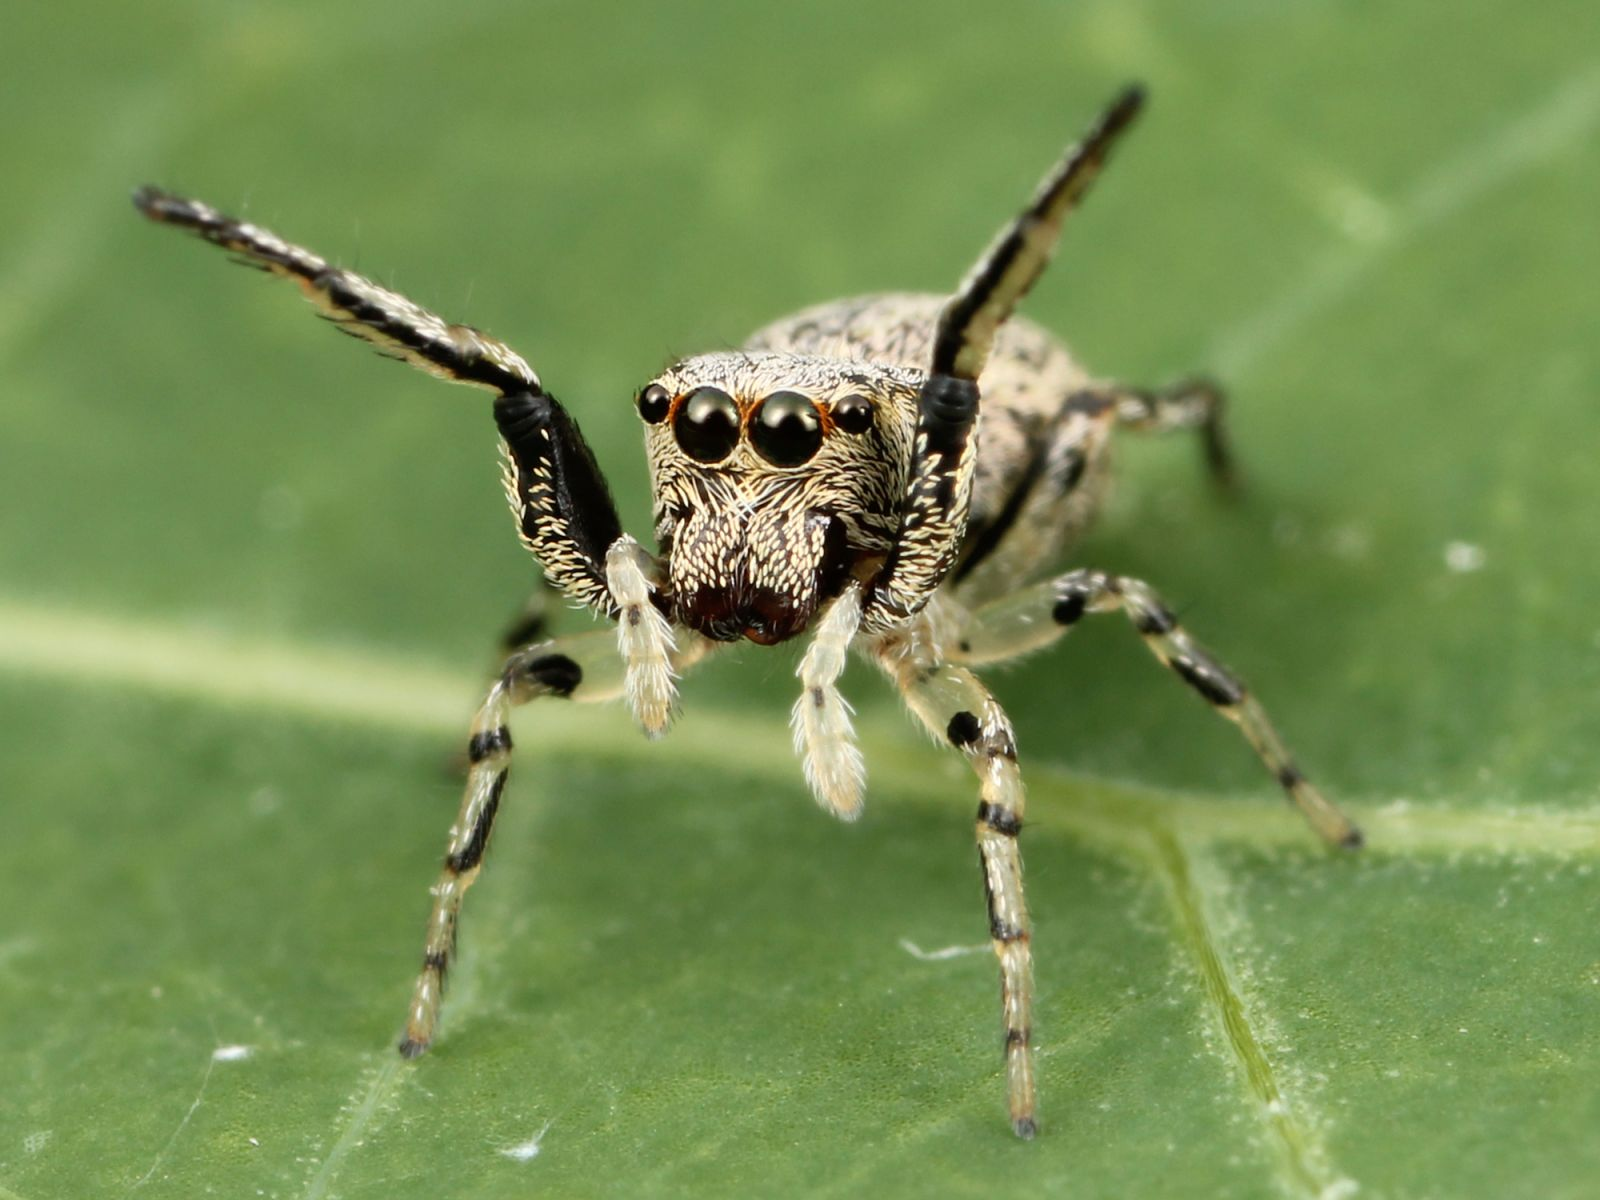 A jumping spider in nature